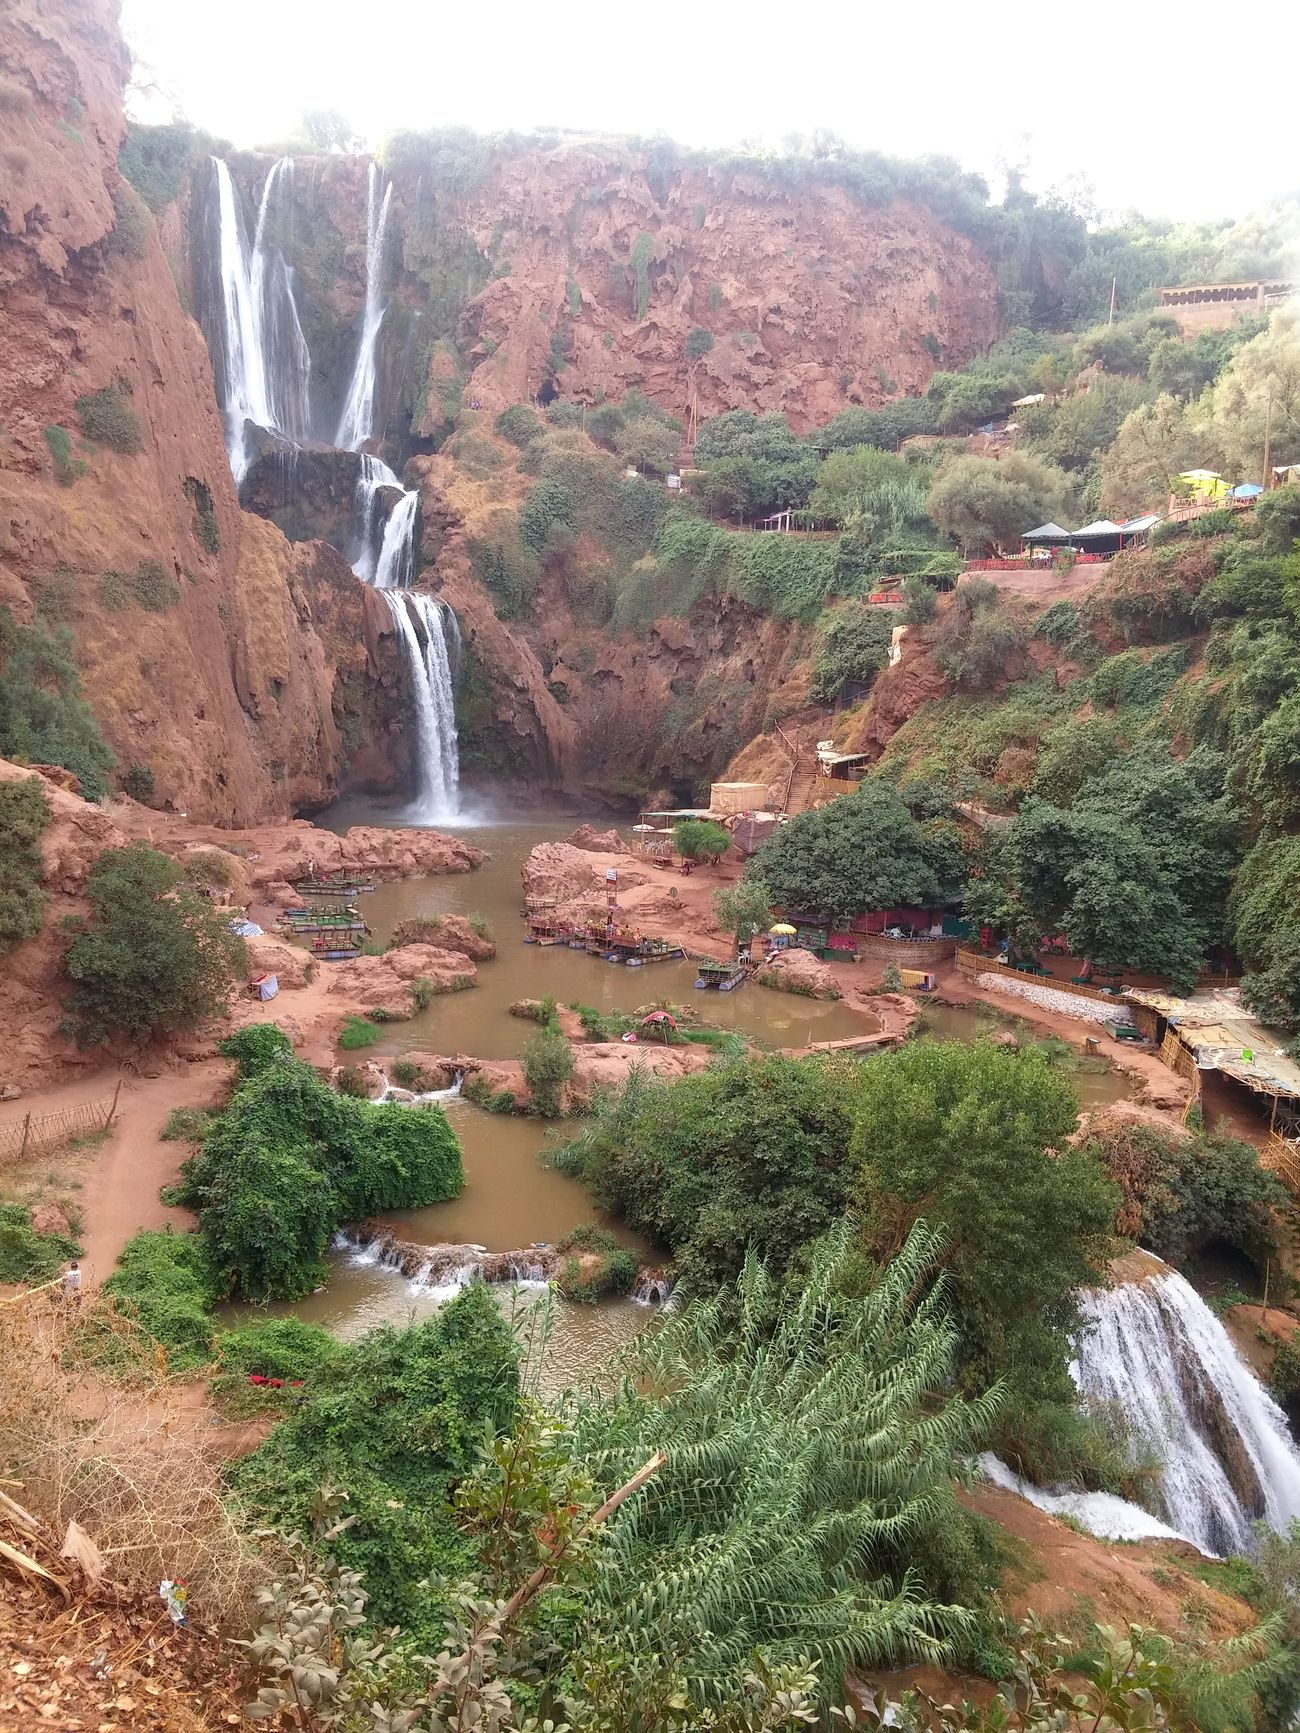 Ouzoud falls in Azilal - Morocco. Sky Mountains Water Waterfall Water_collection Tree Colors View Summer Summer2016 Photo Photography Photooftheday Picture Wonderful Beautiful Nature Landscape Nature Photography Beautiful Nature Great View Ouzoud Falls Ouzoud Azilal Morocco